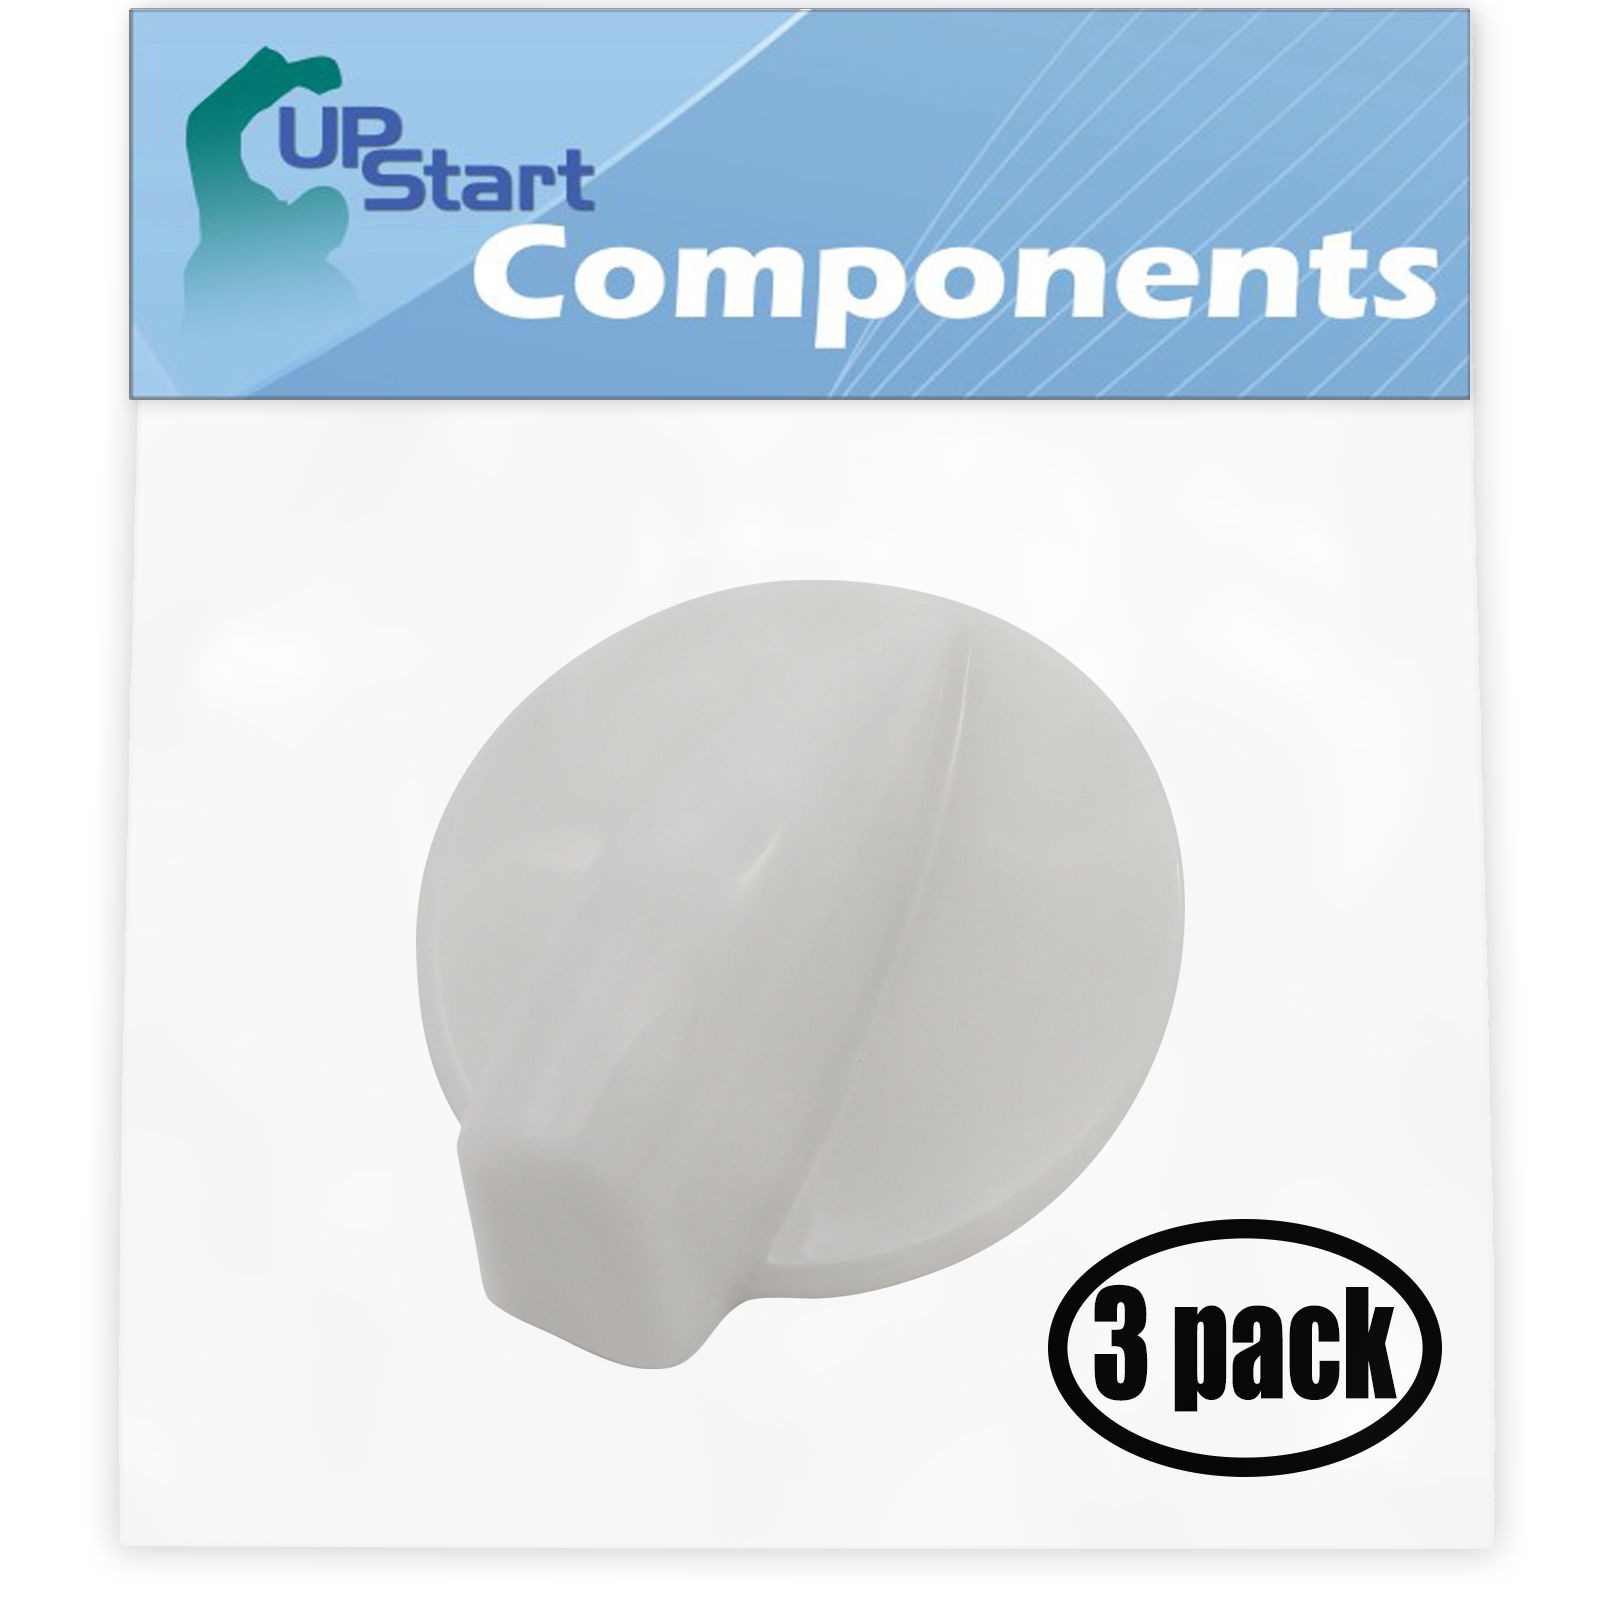 3 Pack Replacement Dryer Timer Knob WP8181922 for Whirlpool GHW9100LQ2 Residential Washer - image 4 de 4